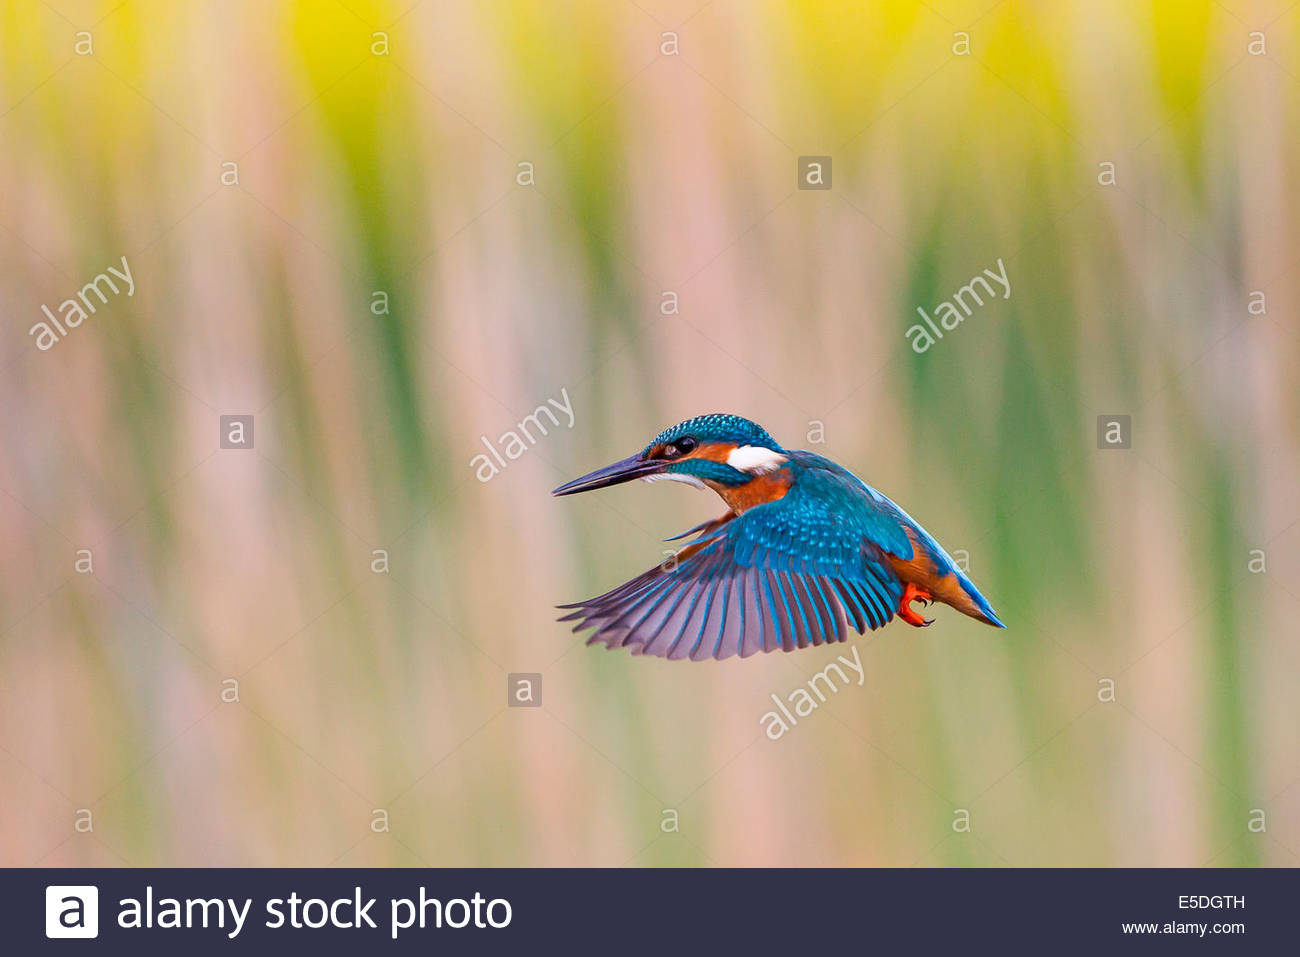 Kingfisher (Alcedo atthis) in stationary flight, North Hesse, Hesse, Germany - Stock Image